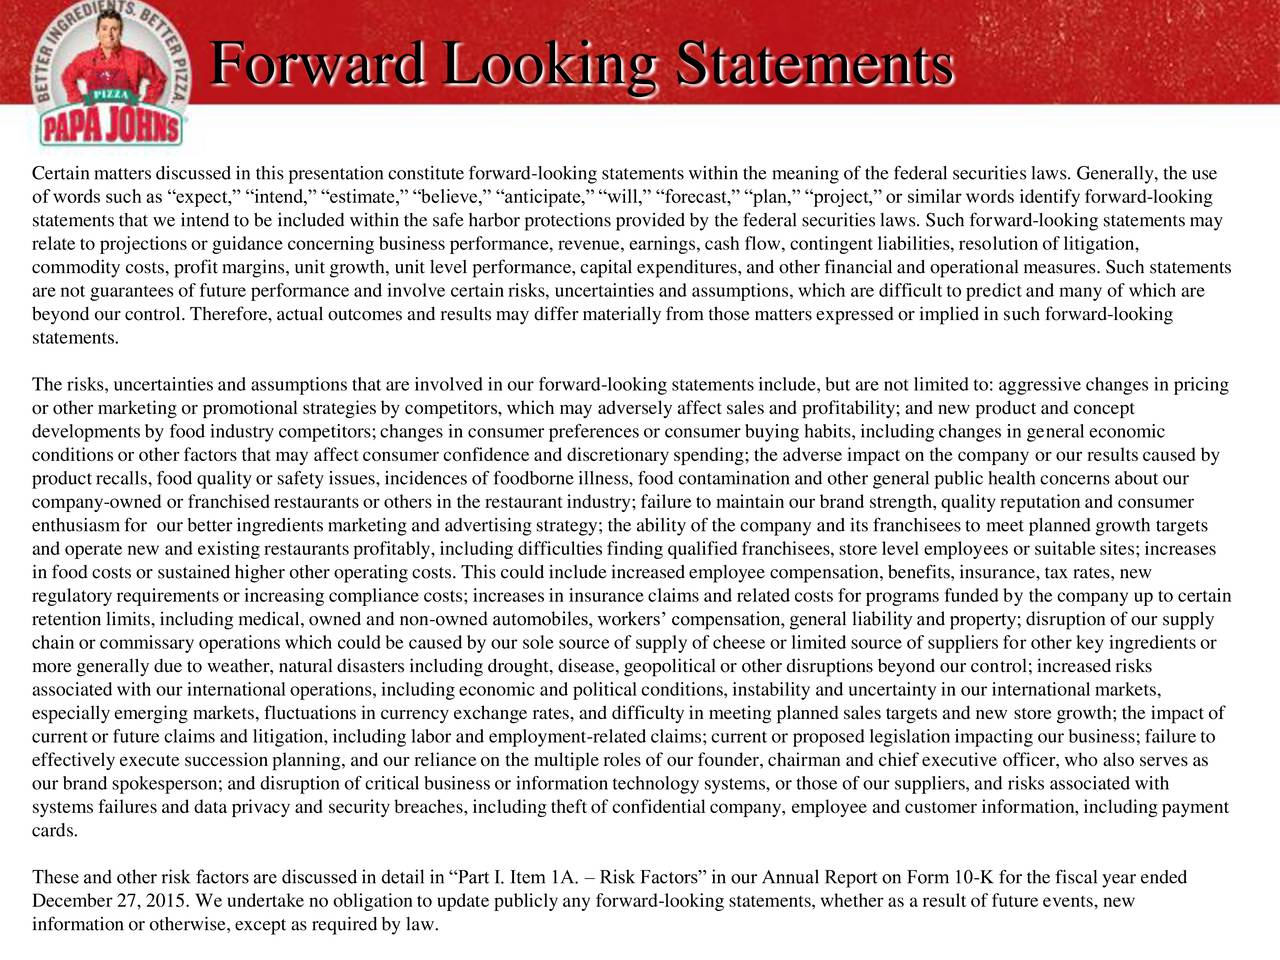 Certain matters discussed in this presentation constitute forward-looking statementswithin the meaning of the federal securitieslaws. Generally, the use of words such as expect, intend, estimate,believe, anticipate,will, forecast, plan, project,or similar words identifyforward-looking statementsthat we intend to be included within the safe harbor protections provided by the federal securities laws. Such forward-looking statementsmay relate to projectionsor guidance concerning business performance, revenue, earnings, cash flow, contingent liabilities, resolutionof litigation, commodity costs, profit margins, unit growth, unit level performance, capital expenditures, and other financial and operational measures. Such statements are not guarantees of future performance and involve certainrisks, uncertainties and assumptions, which are difficult to predict and many of which are beyond our control. Therefore, actual outcomes and resultsmay differ materially from those matters expressed or implied in such forward-looking statements. The risks, uncertainties and assumptions that are involved in our forward-looking statementsinclude, but are not limited to: aggressive changes in pricing or other marketing or promotional strategiesby competitors, which may adversely affect sales and profitability; and new product and concept developments by food industry competitors;changes in consumer preferences or consumer buying habits, including changes in general economic conditionsor other factors that may affect consumer confidence and discretionaryspending; the adverse impact on the company or our resultscaused by product recalls,food quality or safety issues, incidences of foodborne illness, food contamination and other general public health concerns about our company-owned or franchisedrestaurantsor others in the restaurant industry; failure to maintain our brand strength, quality reputationand consumer enthusiasmfor our better ingredients marketing and advertising strategy; the a